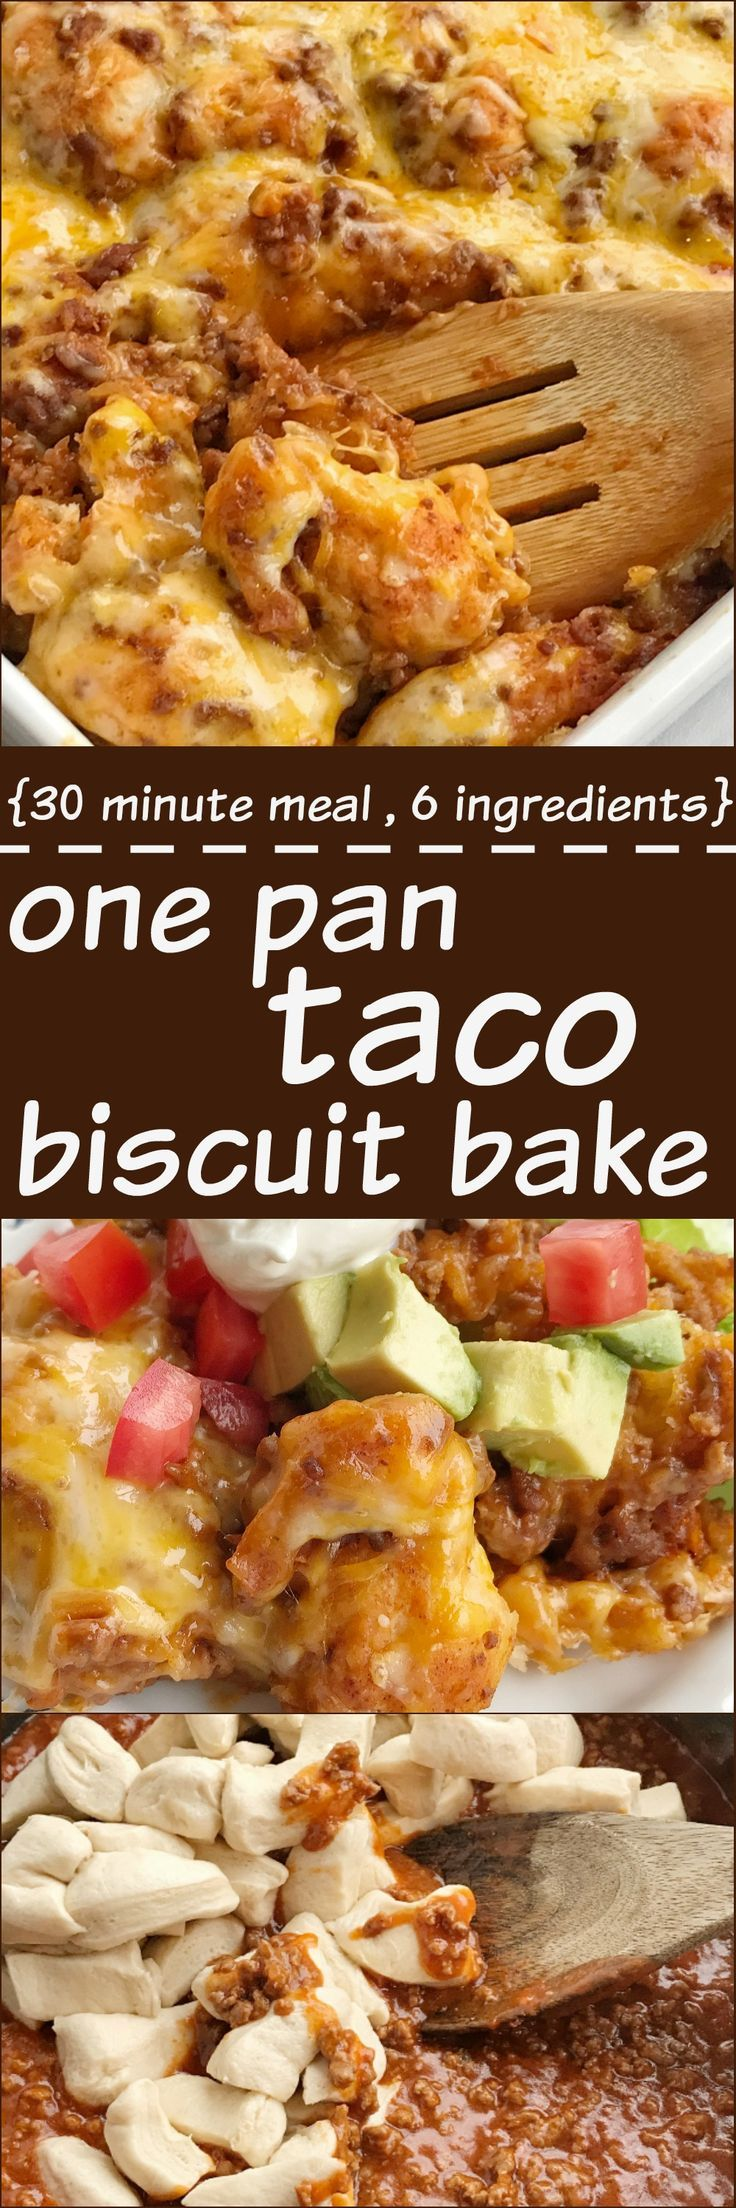 Taco biscuit bake is an easy & simple one pot meal. Puffed up refrigerated biscuits smothered in a beefy taco mixture and topped with melted cheese. Customize with your favorite taco toppings and you have a delicious dinner that the entire family will lov